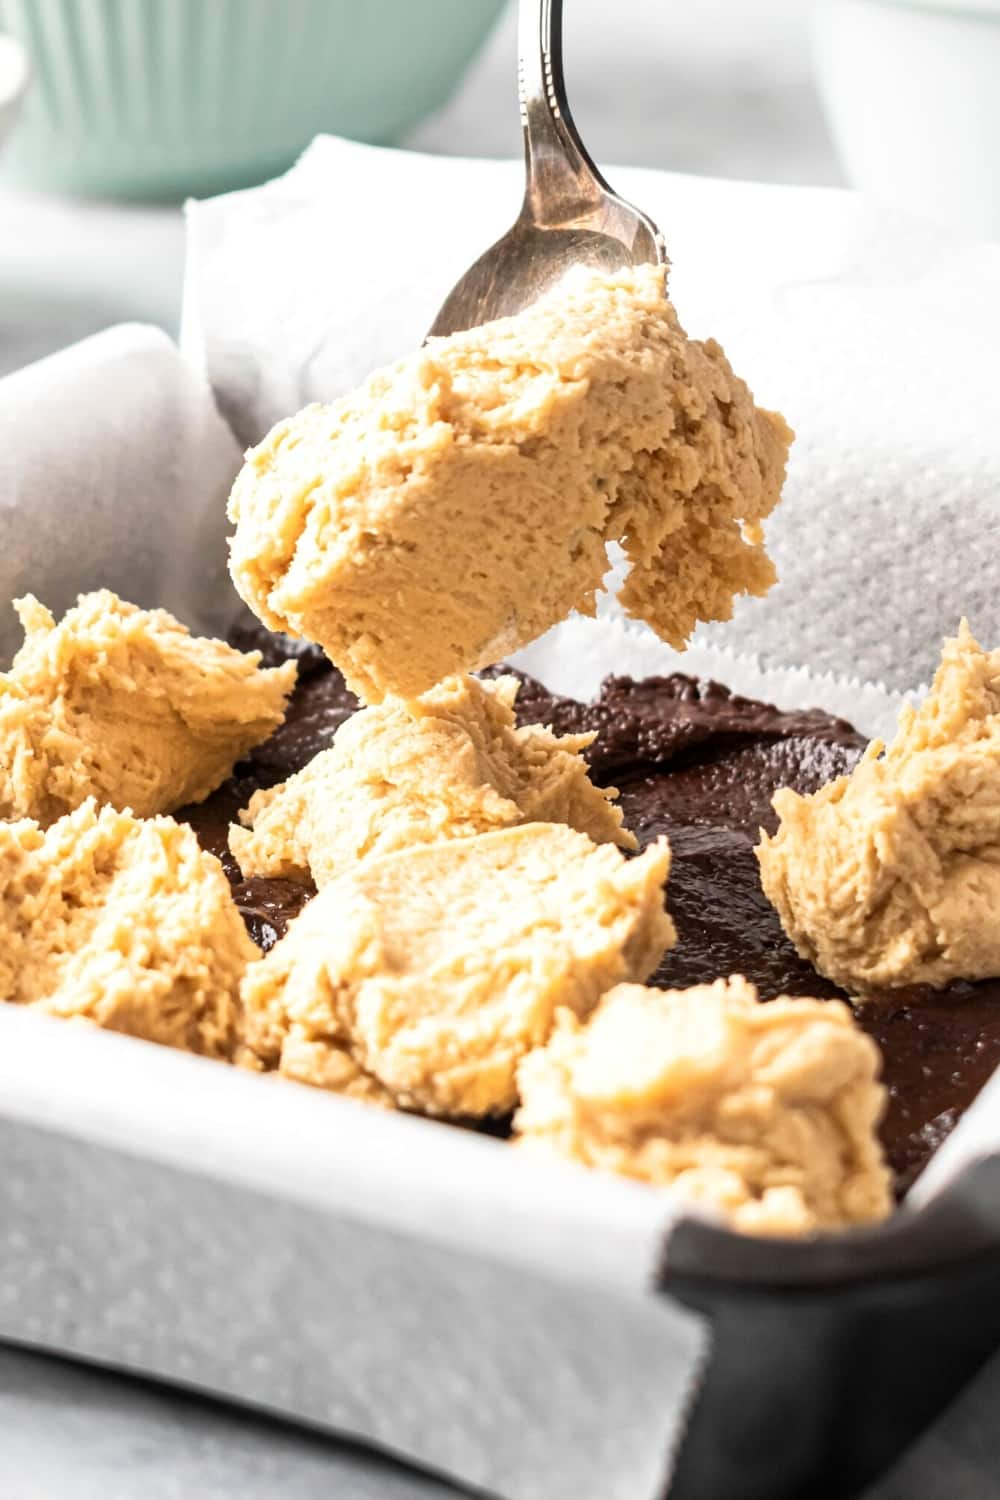 Baking pan lined with parchment paper with brownie batter on it and some balls of cookie dough on top. A spoon is scooping a bowl of cookie dough into the pan.